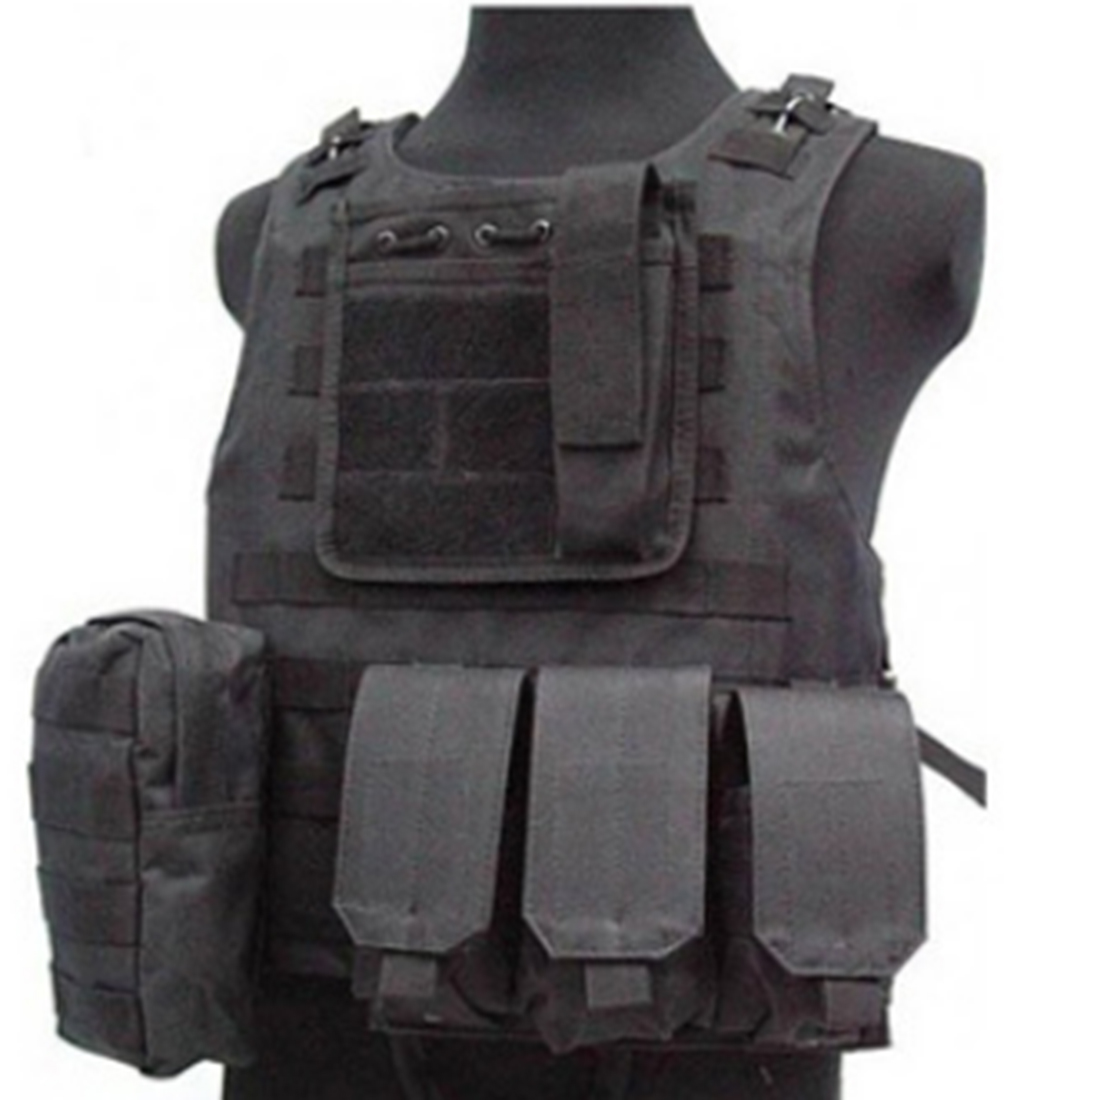 Tactical Vest Men Waistcoat Combat Molle Military Multi Pockets Vest for Camping Hunting CS Wargame Airsoft Paintball Airsoft wosport tmc transformers cqb lbv molle vest military airsoft paintball combat assault cs field protection vest free shipping